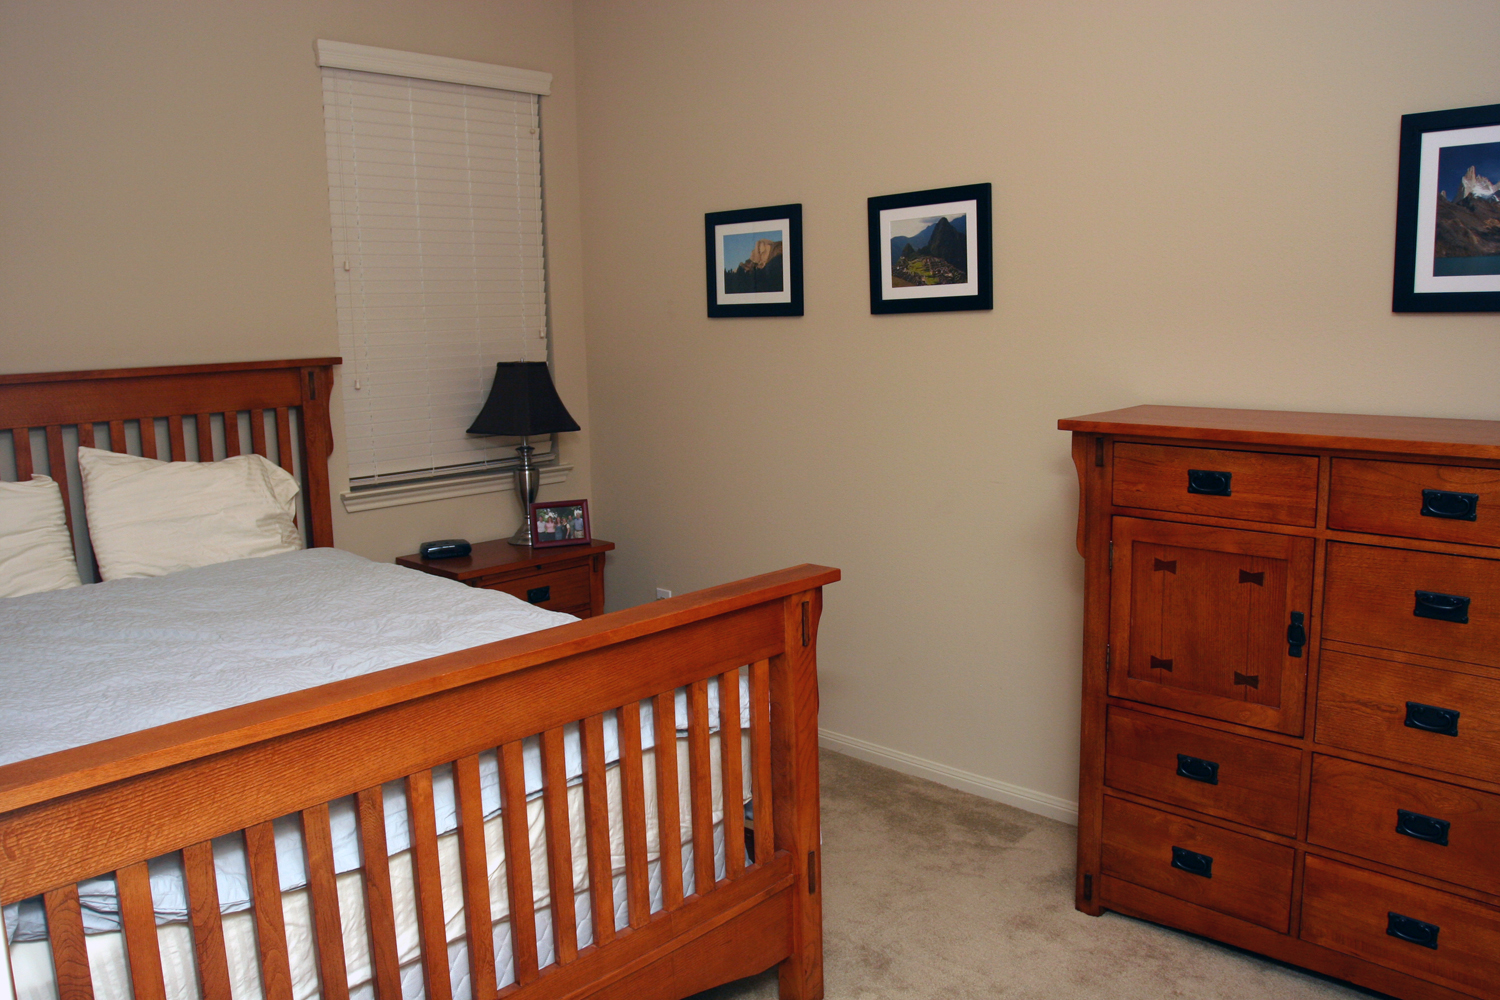 Two additional bedrooms 8 39 x 11 39 and 9 39 x 11 39 images for 11x10 bedroom ideas